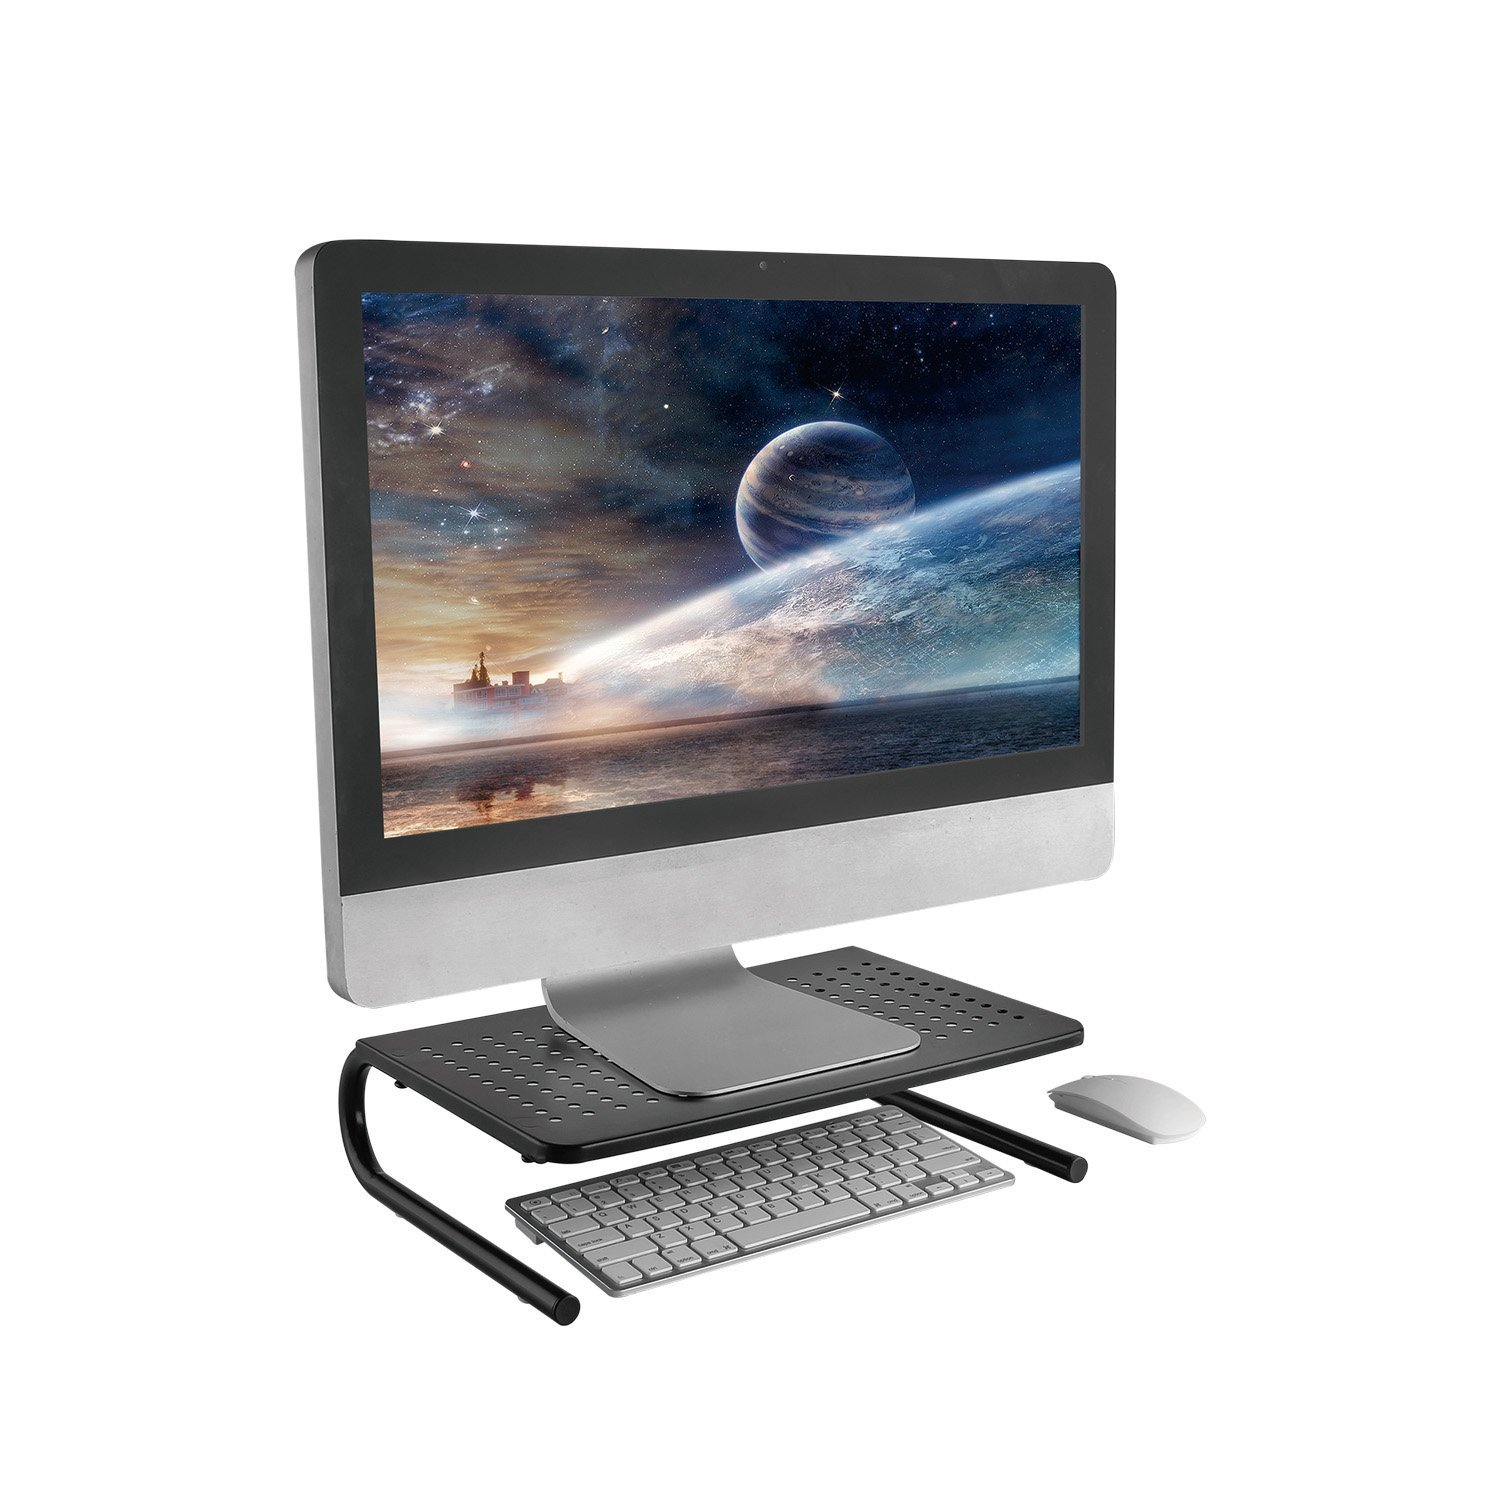 Monitor Stand Riser with Vented Metal for Computer, Laptop, Desk, iMac, Printer with 14.5 Platform 4 inch Height (Black, 2 Pack) by HUANUO (Image #6)